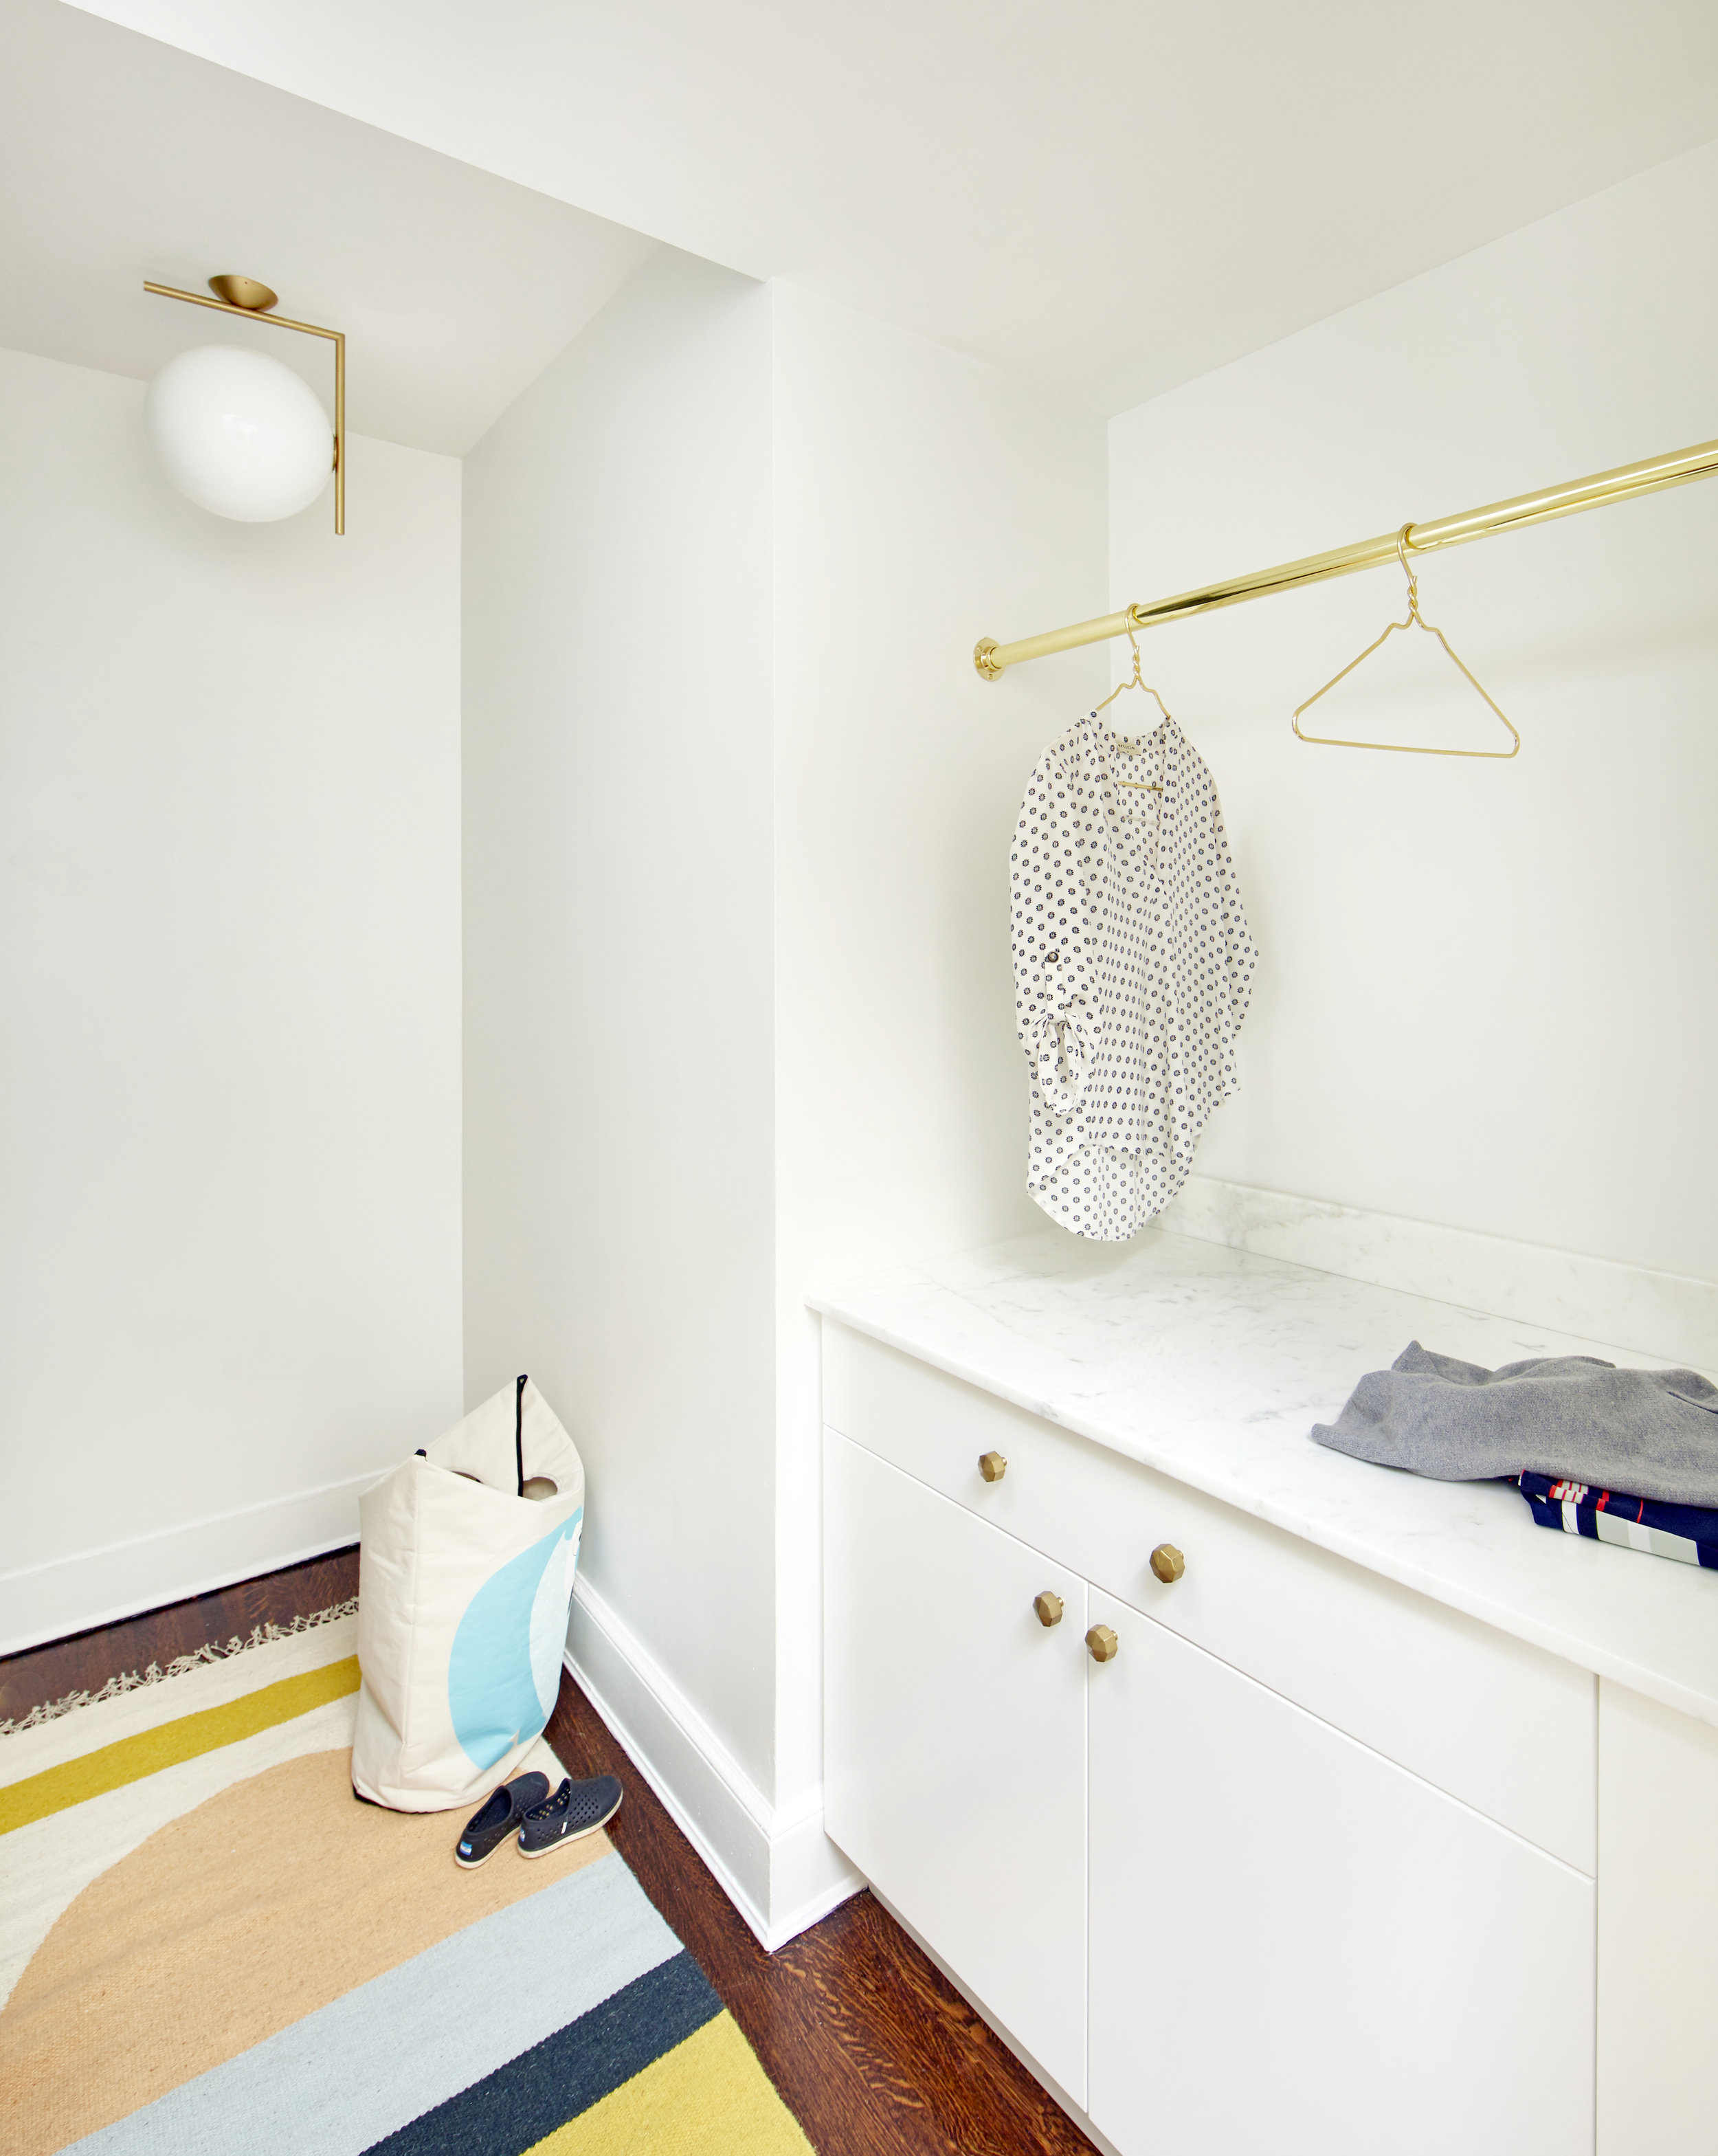 Combo laundry room / walk-in closet in our  'Carroll Street Cool'  project.